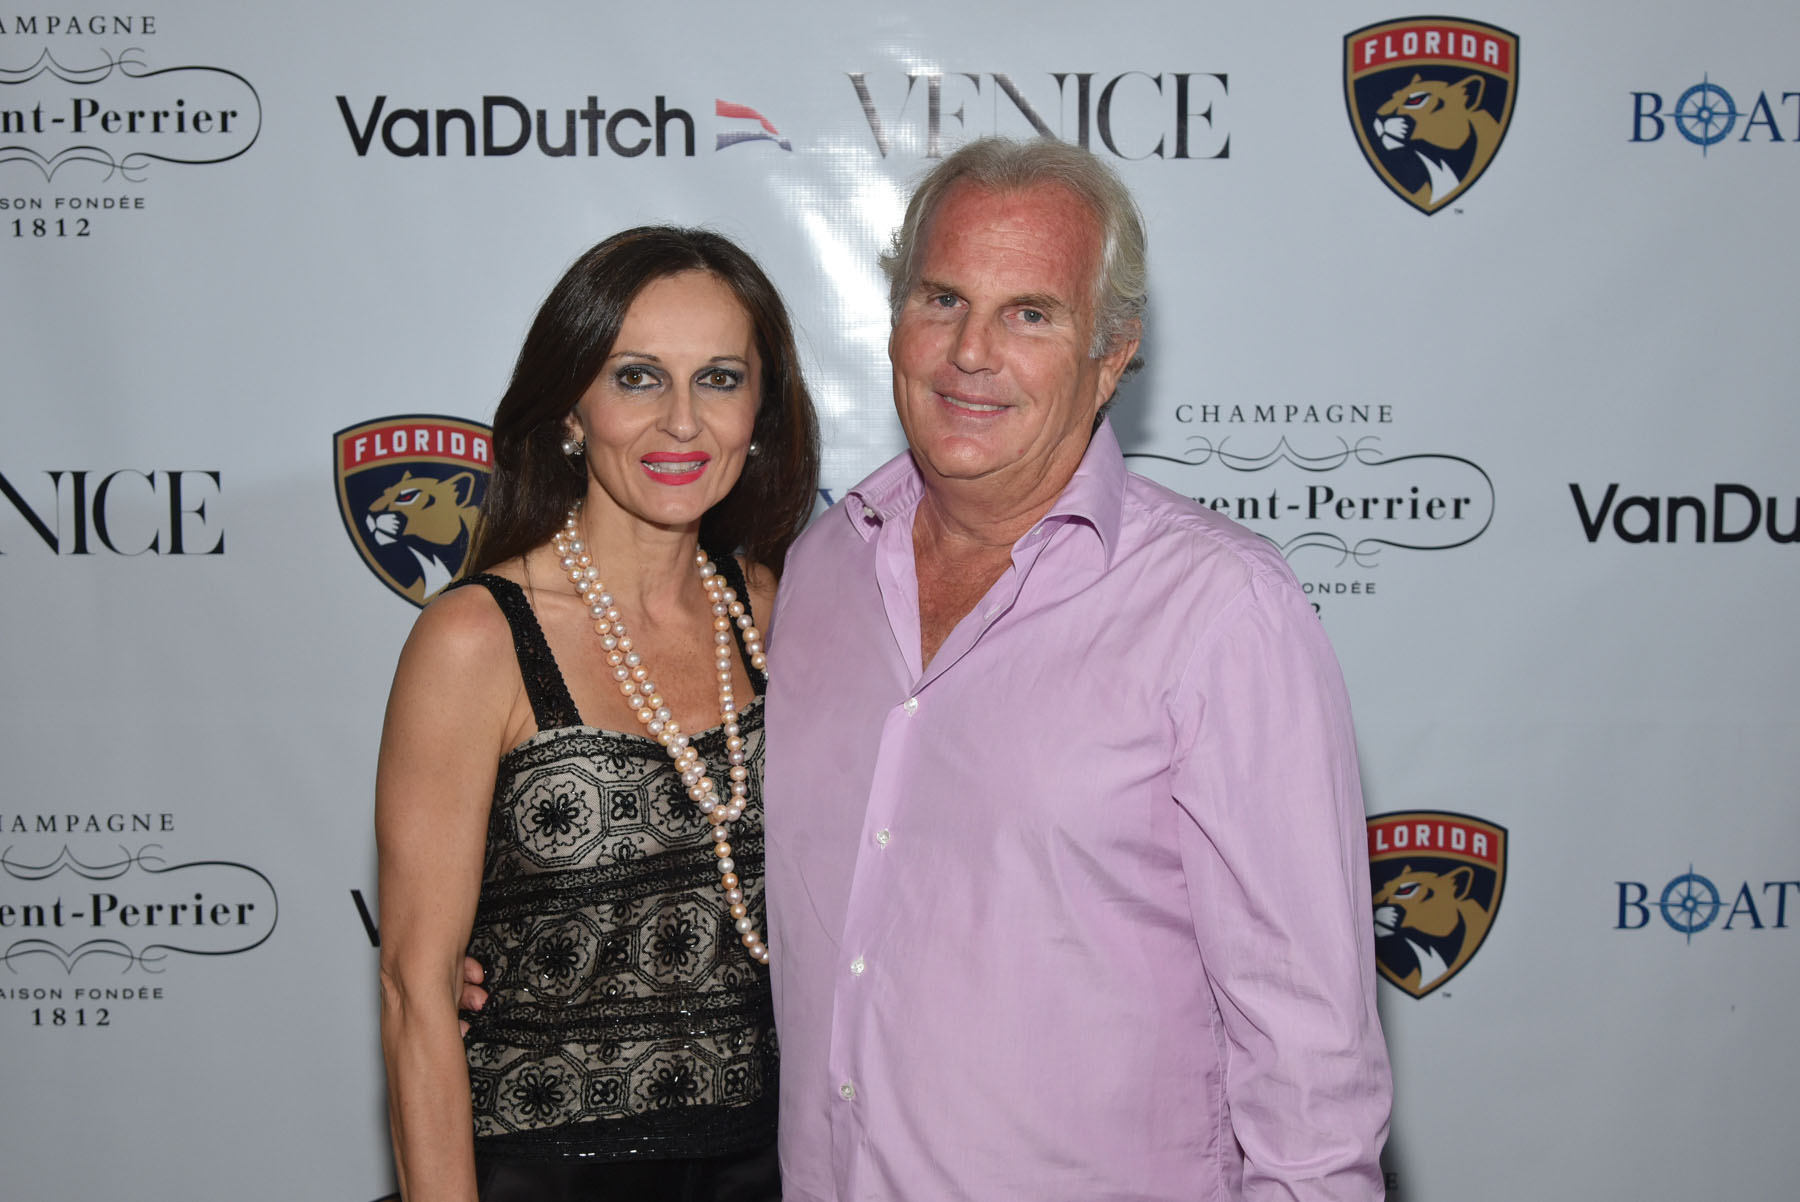 katia-and-tom-bates-City-Cool-Boat-Yard-Fort-Lauderdale-Venice-Magazine